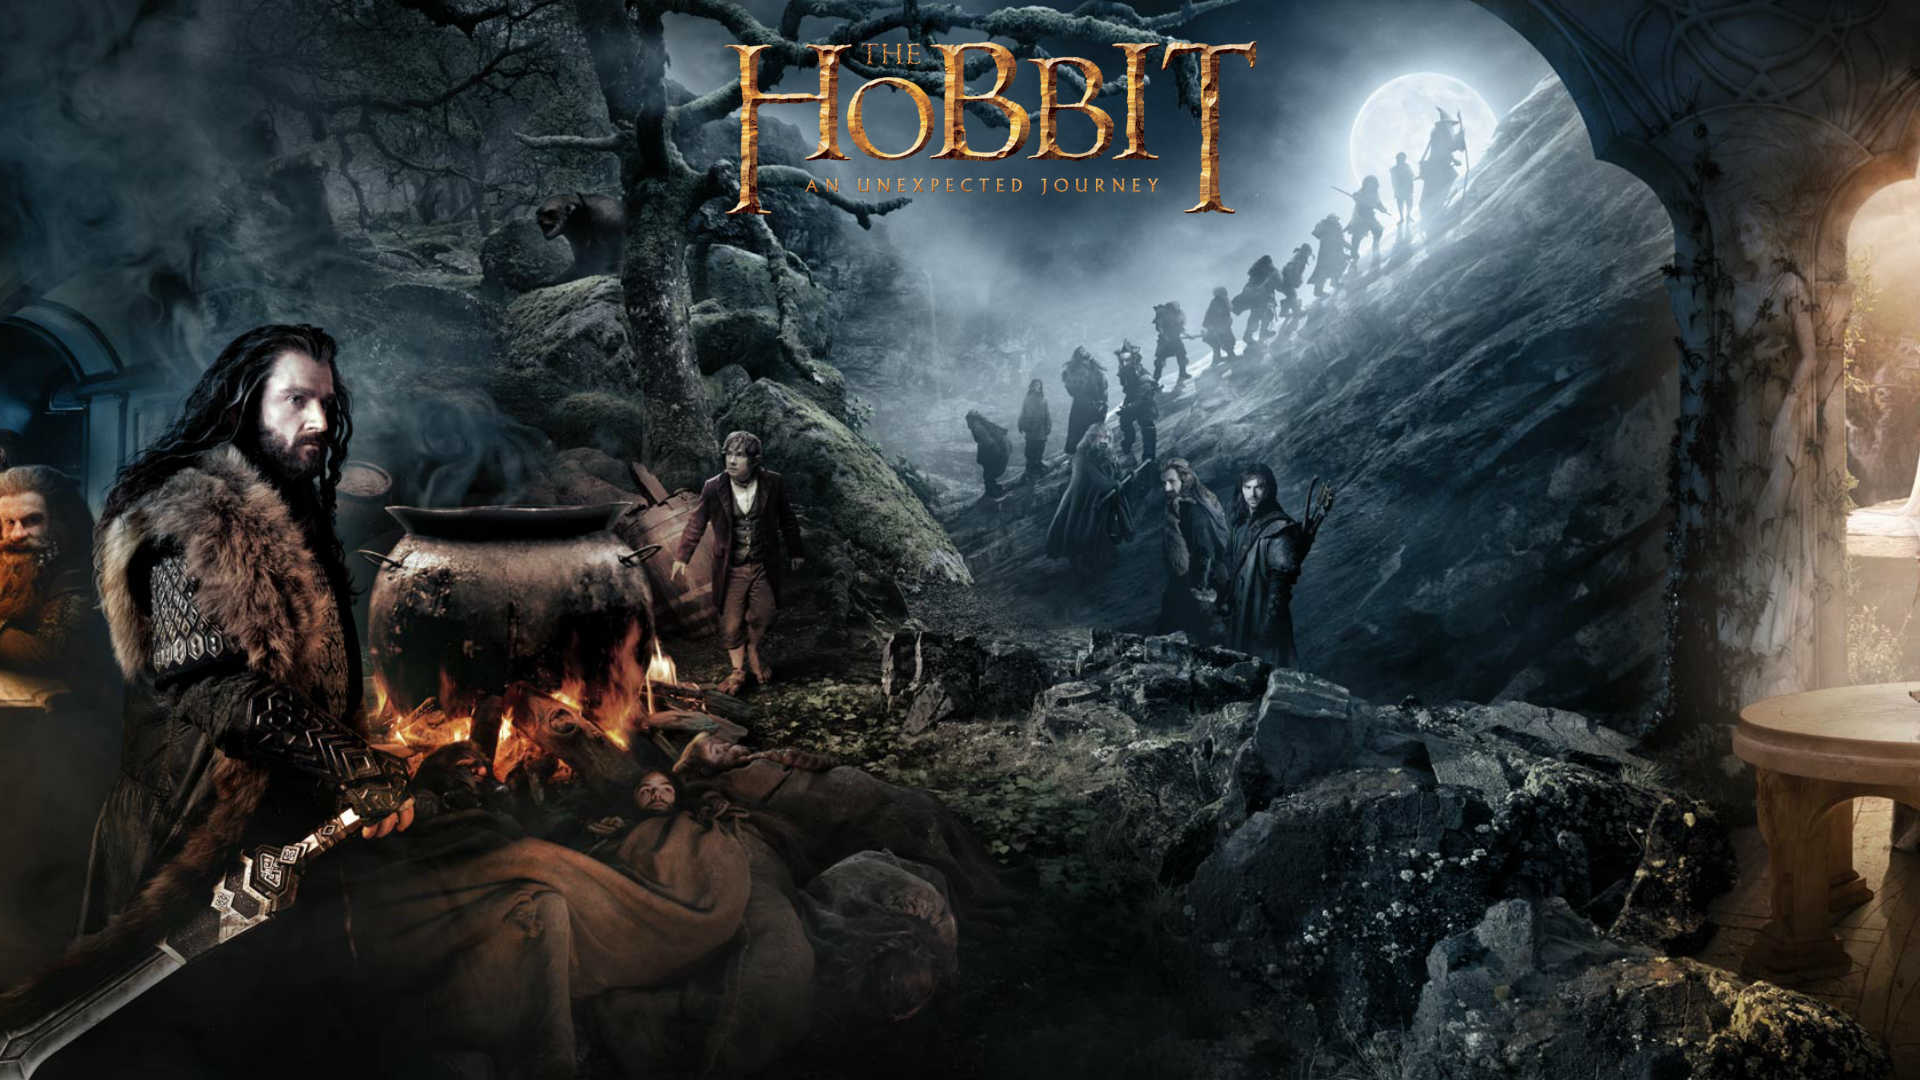 The Hobbit Wallpaper   The Hobbit Wallpaper 33042231   Page 1920x1080